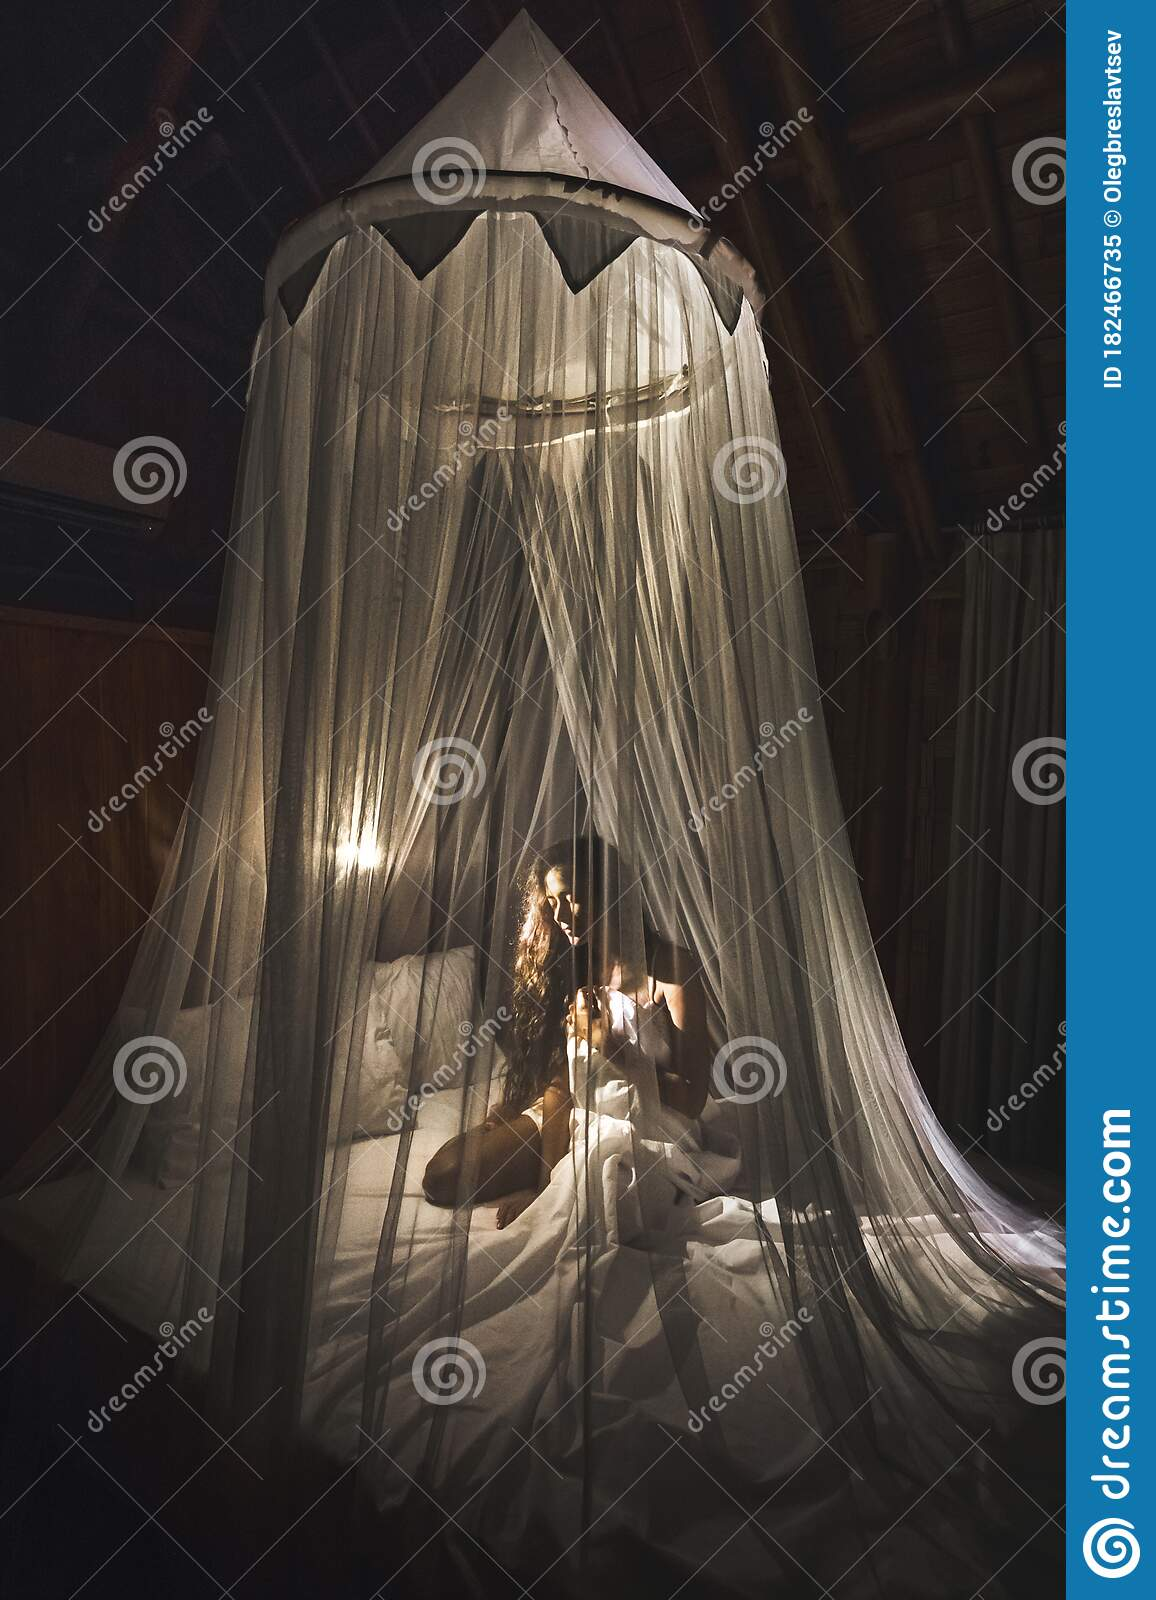 203 Canopy Bedroom Romantic Photos Free Royalty Free Stock Photos From Dreamstime